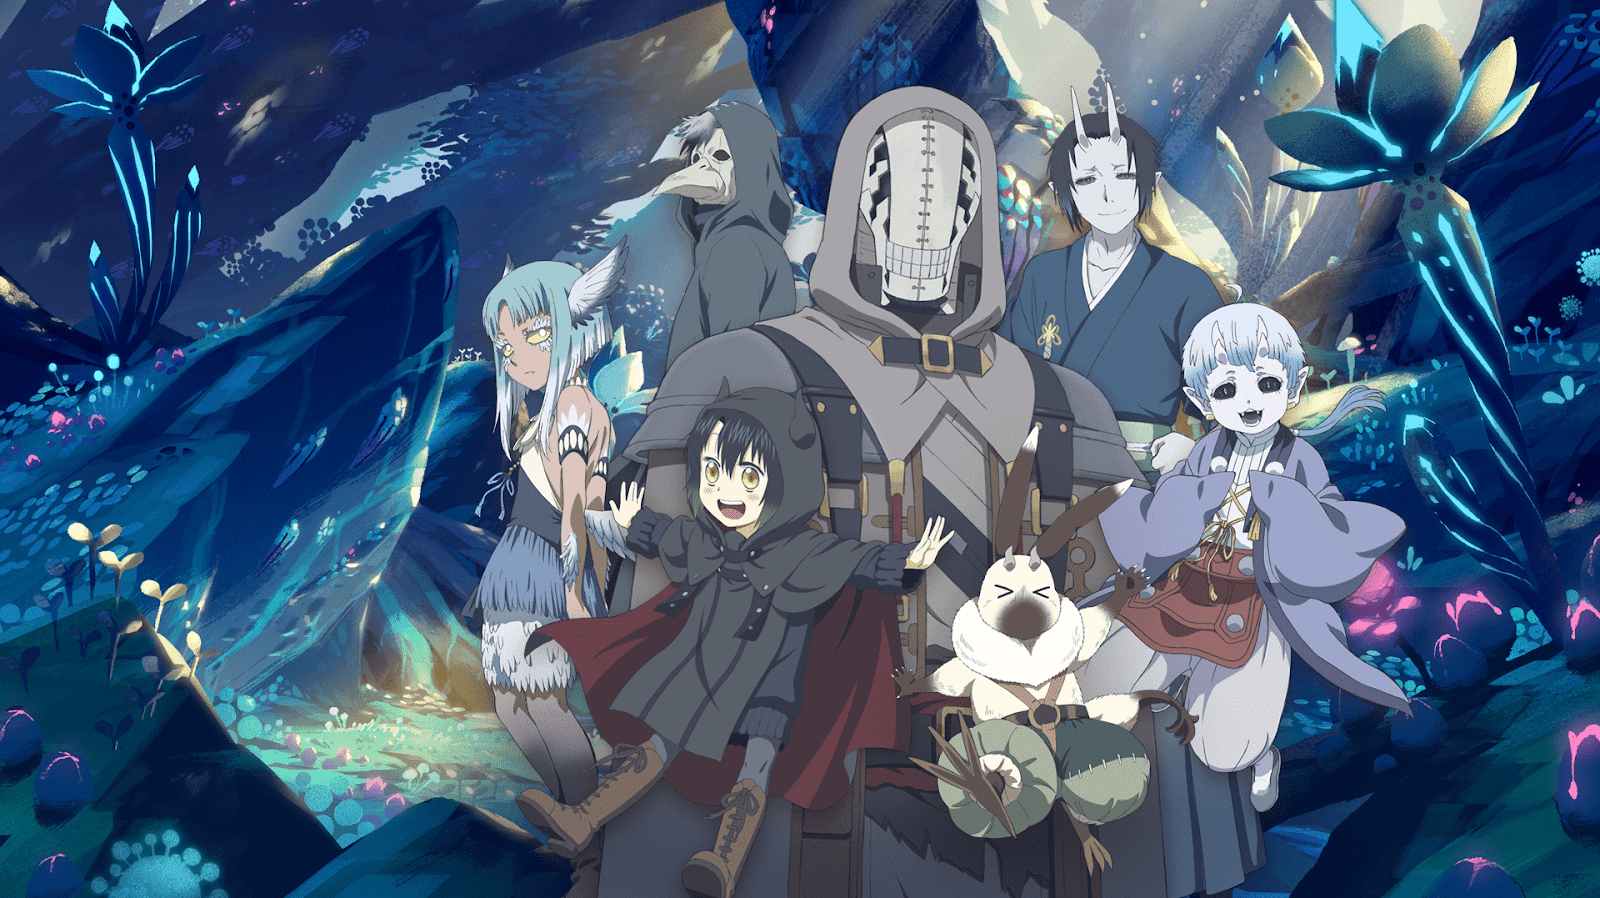 Somali To Mori No Kamisama (1-12) Batch Subtitle Indonesia